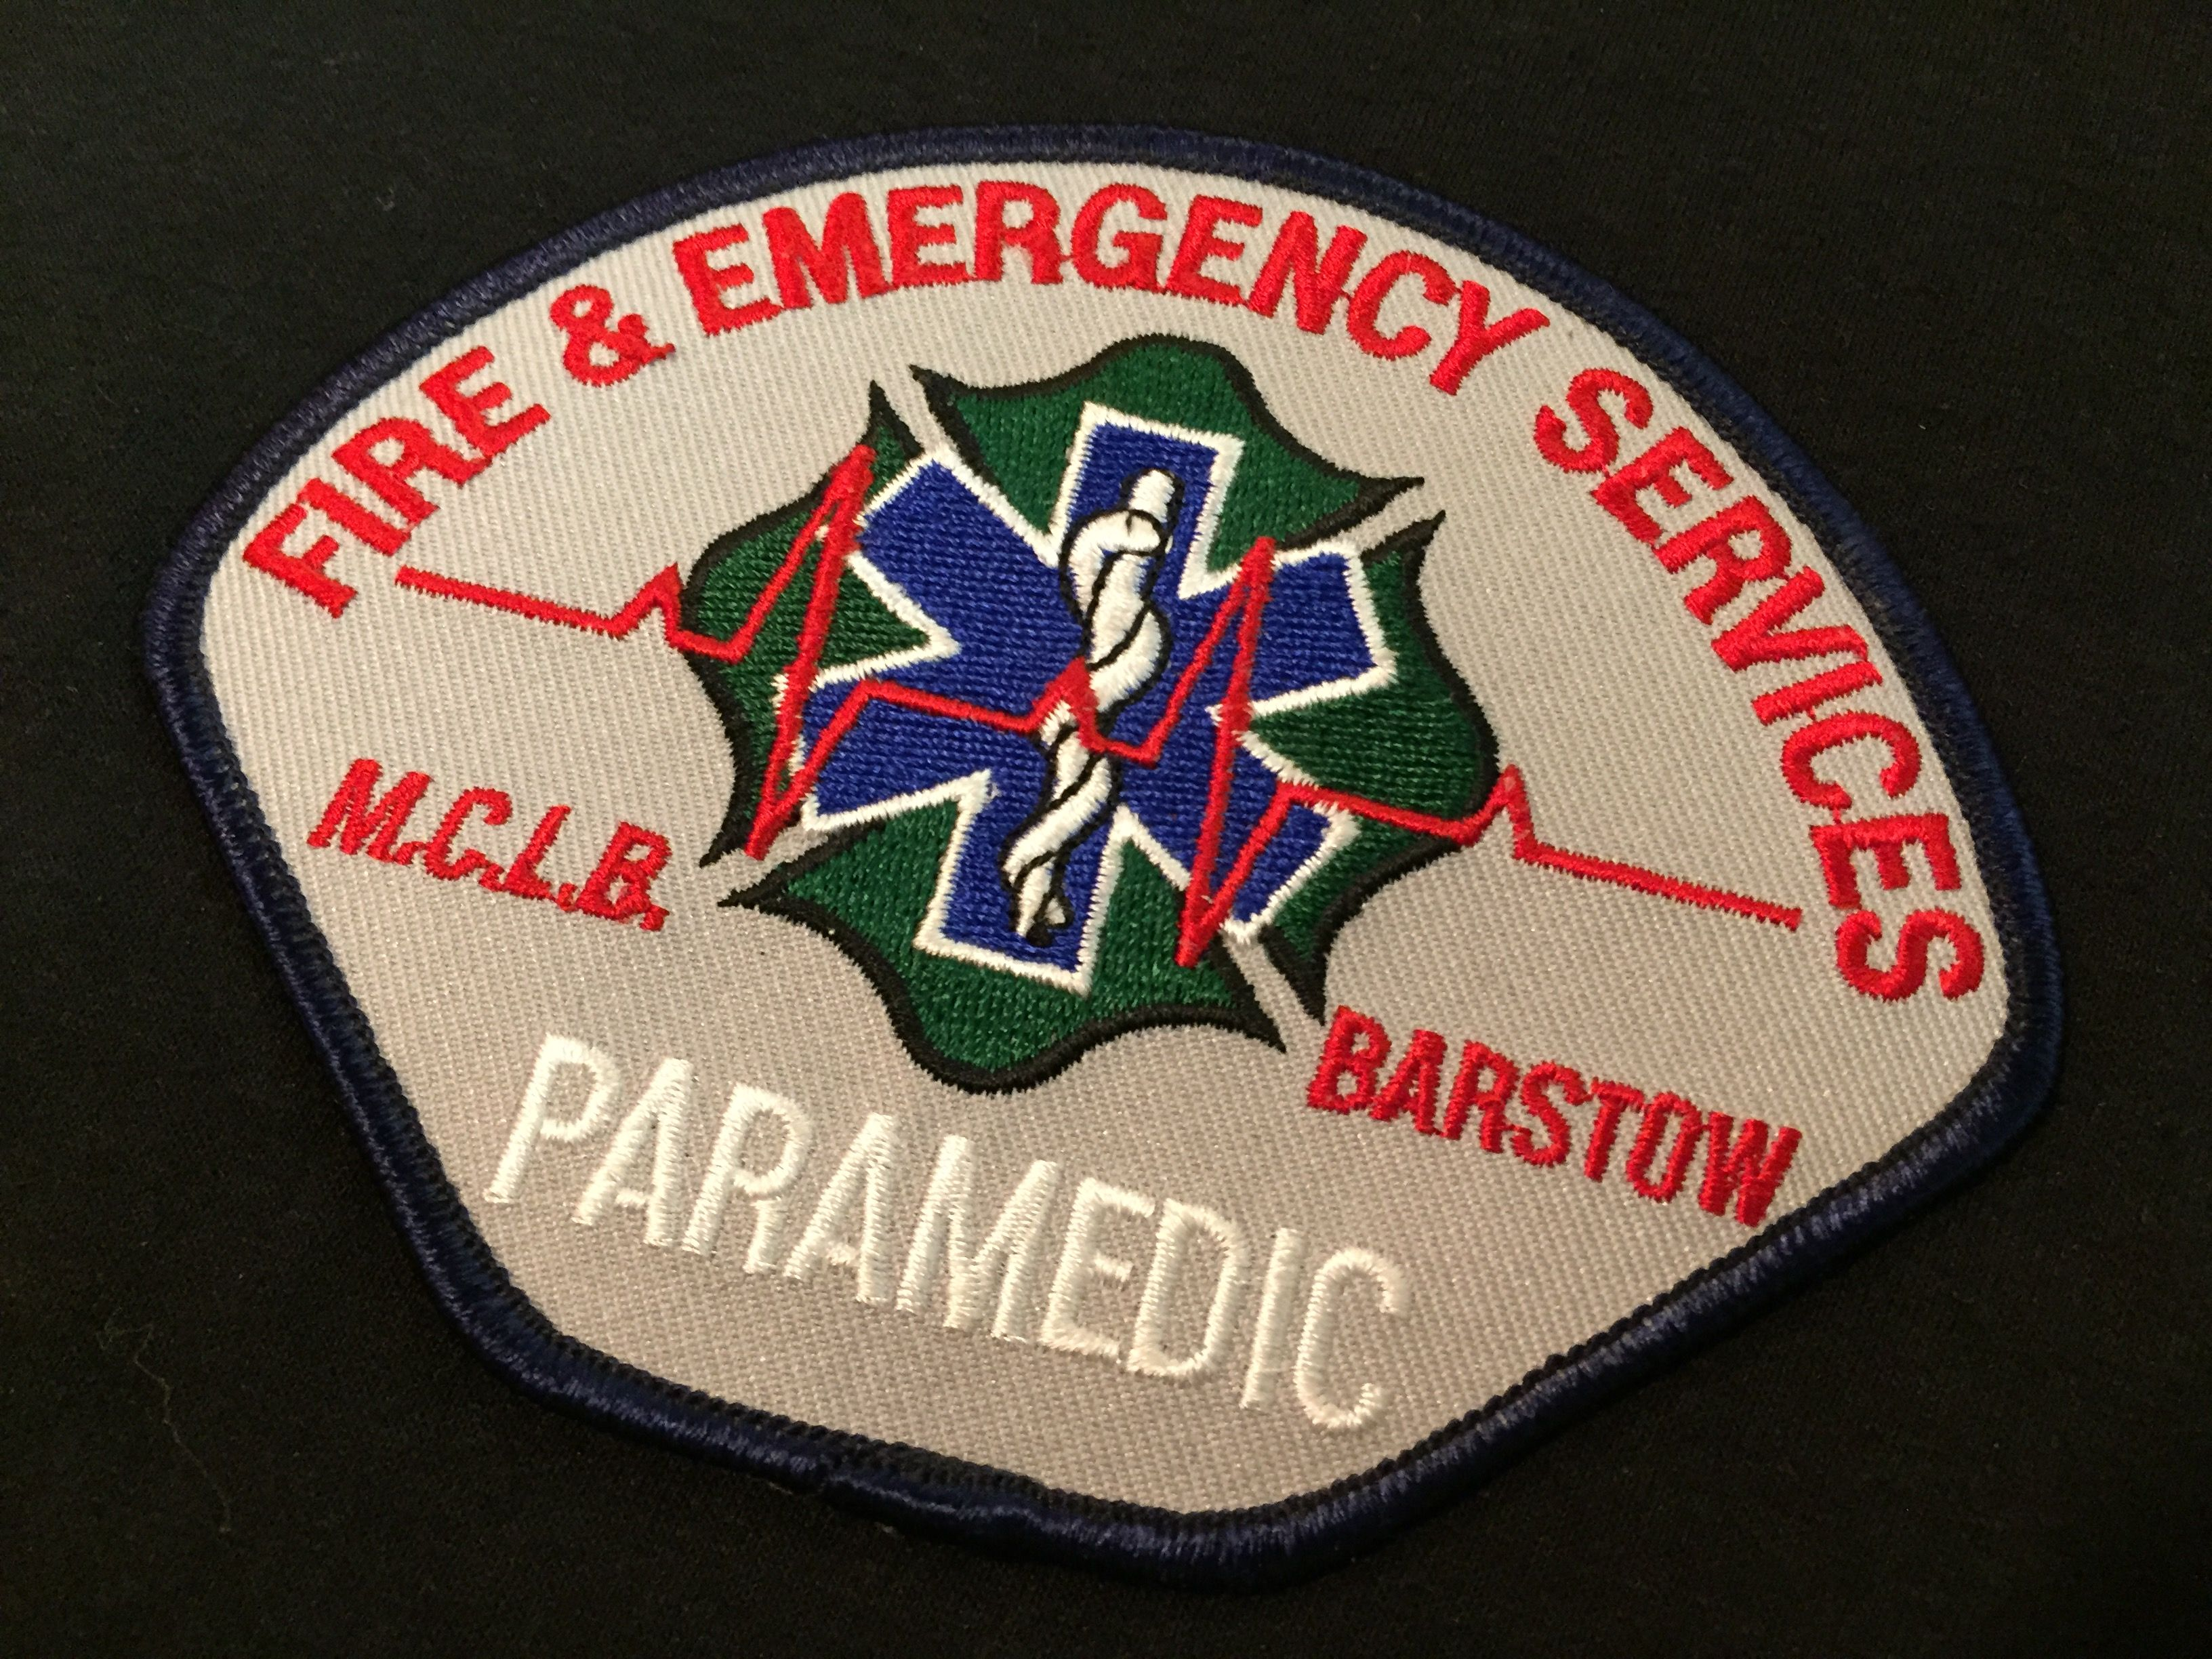 Marine corps logistics base barstow fire firefighter